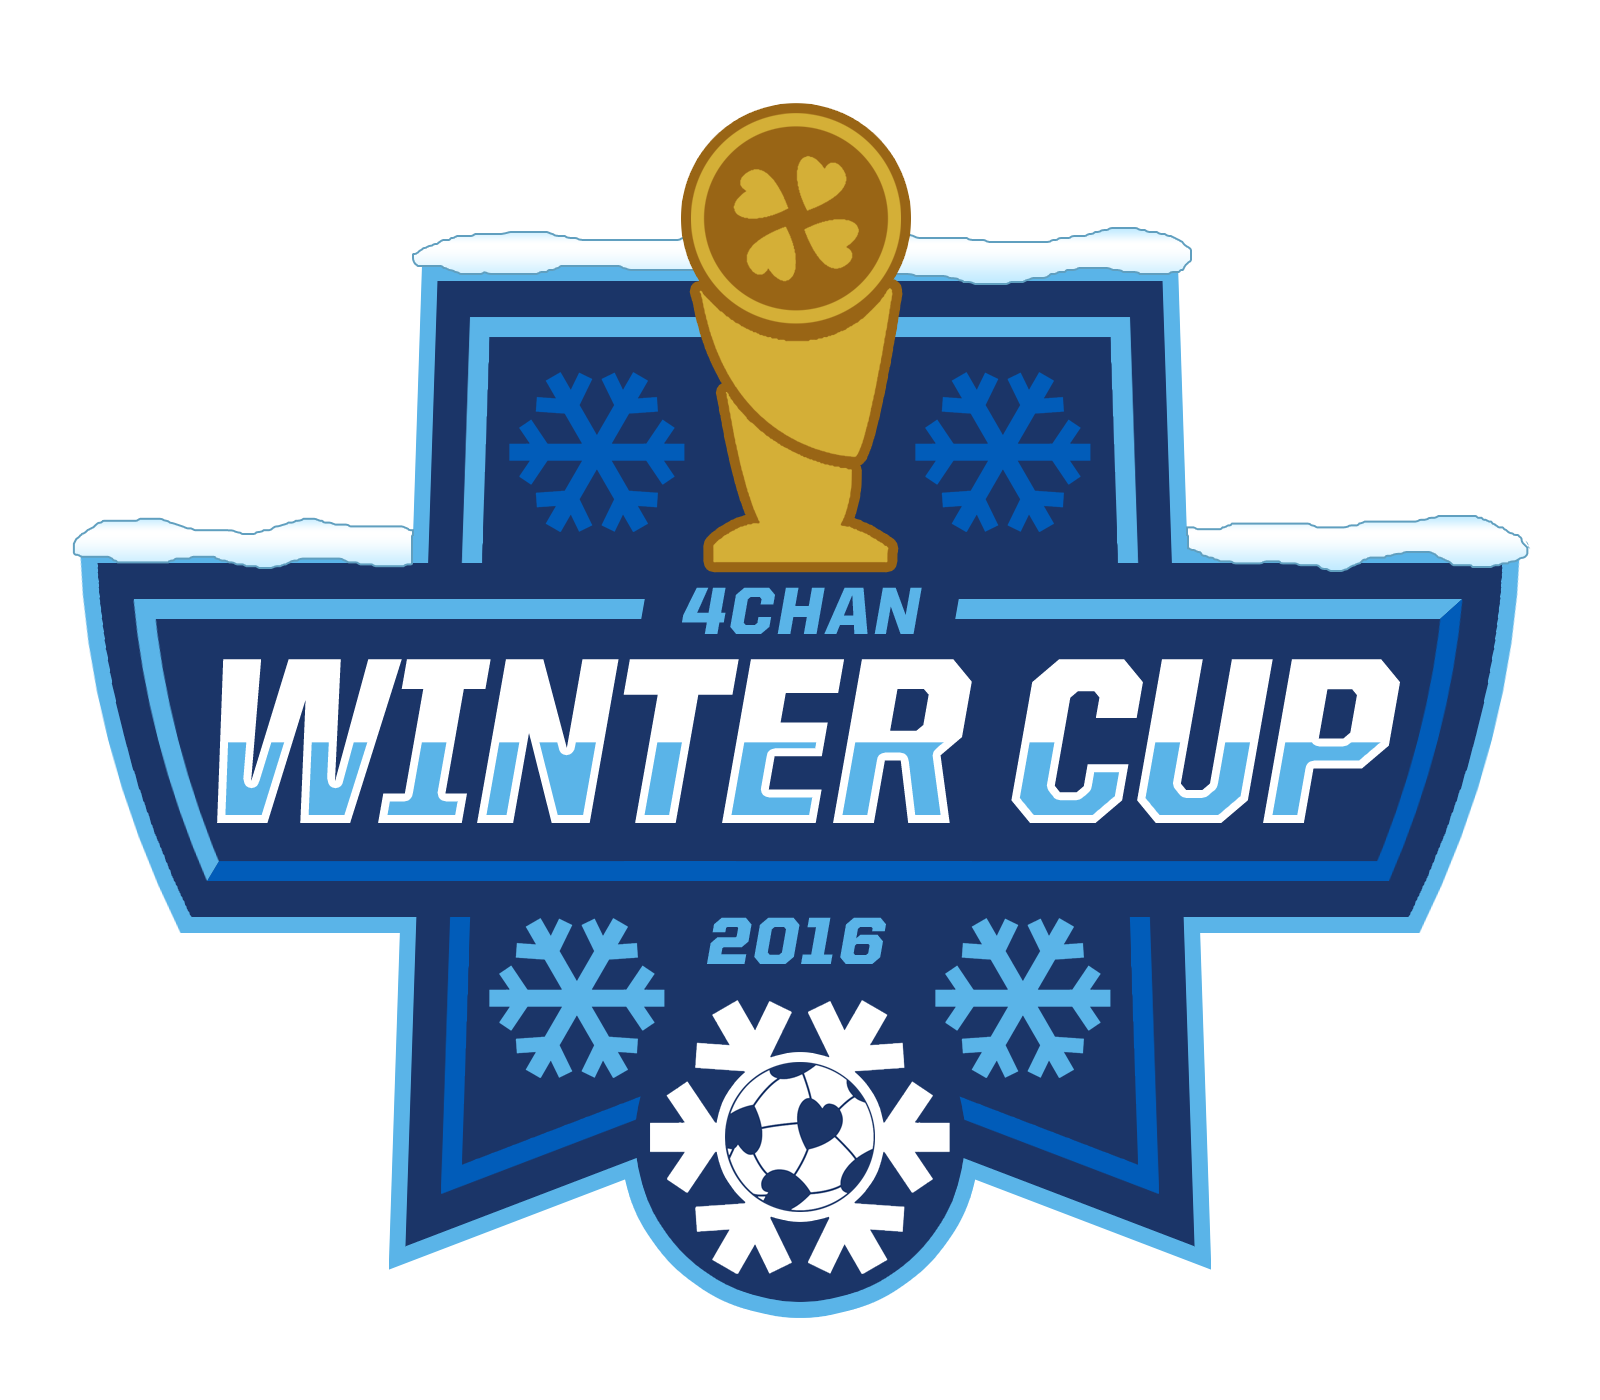 2016 4chan Winter Cup